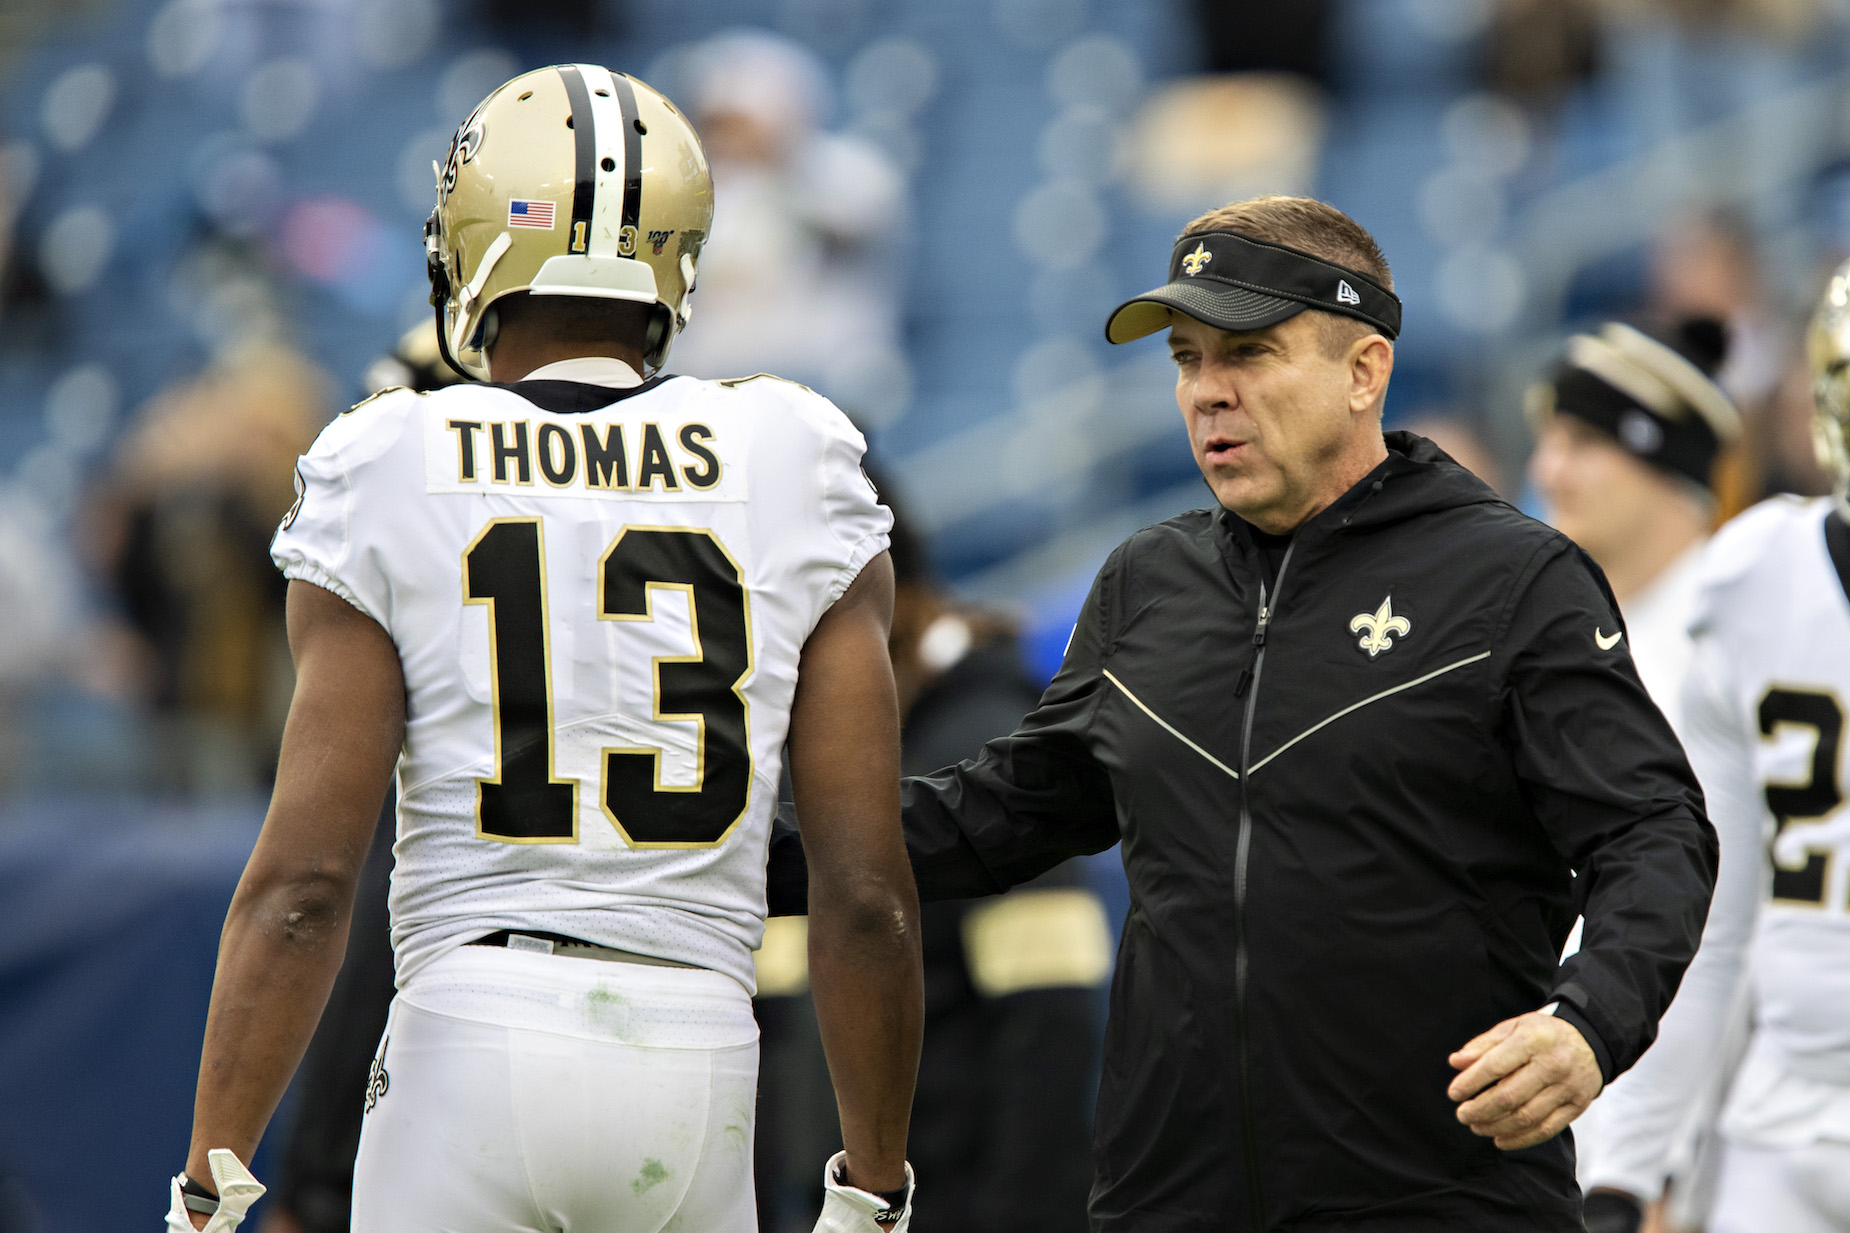 New Orleans Saints head coach Sean Payton took to Twitter and sent a strong message about Michael Thomas' future.